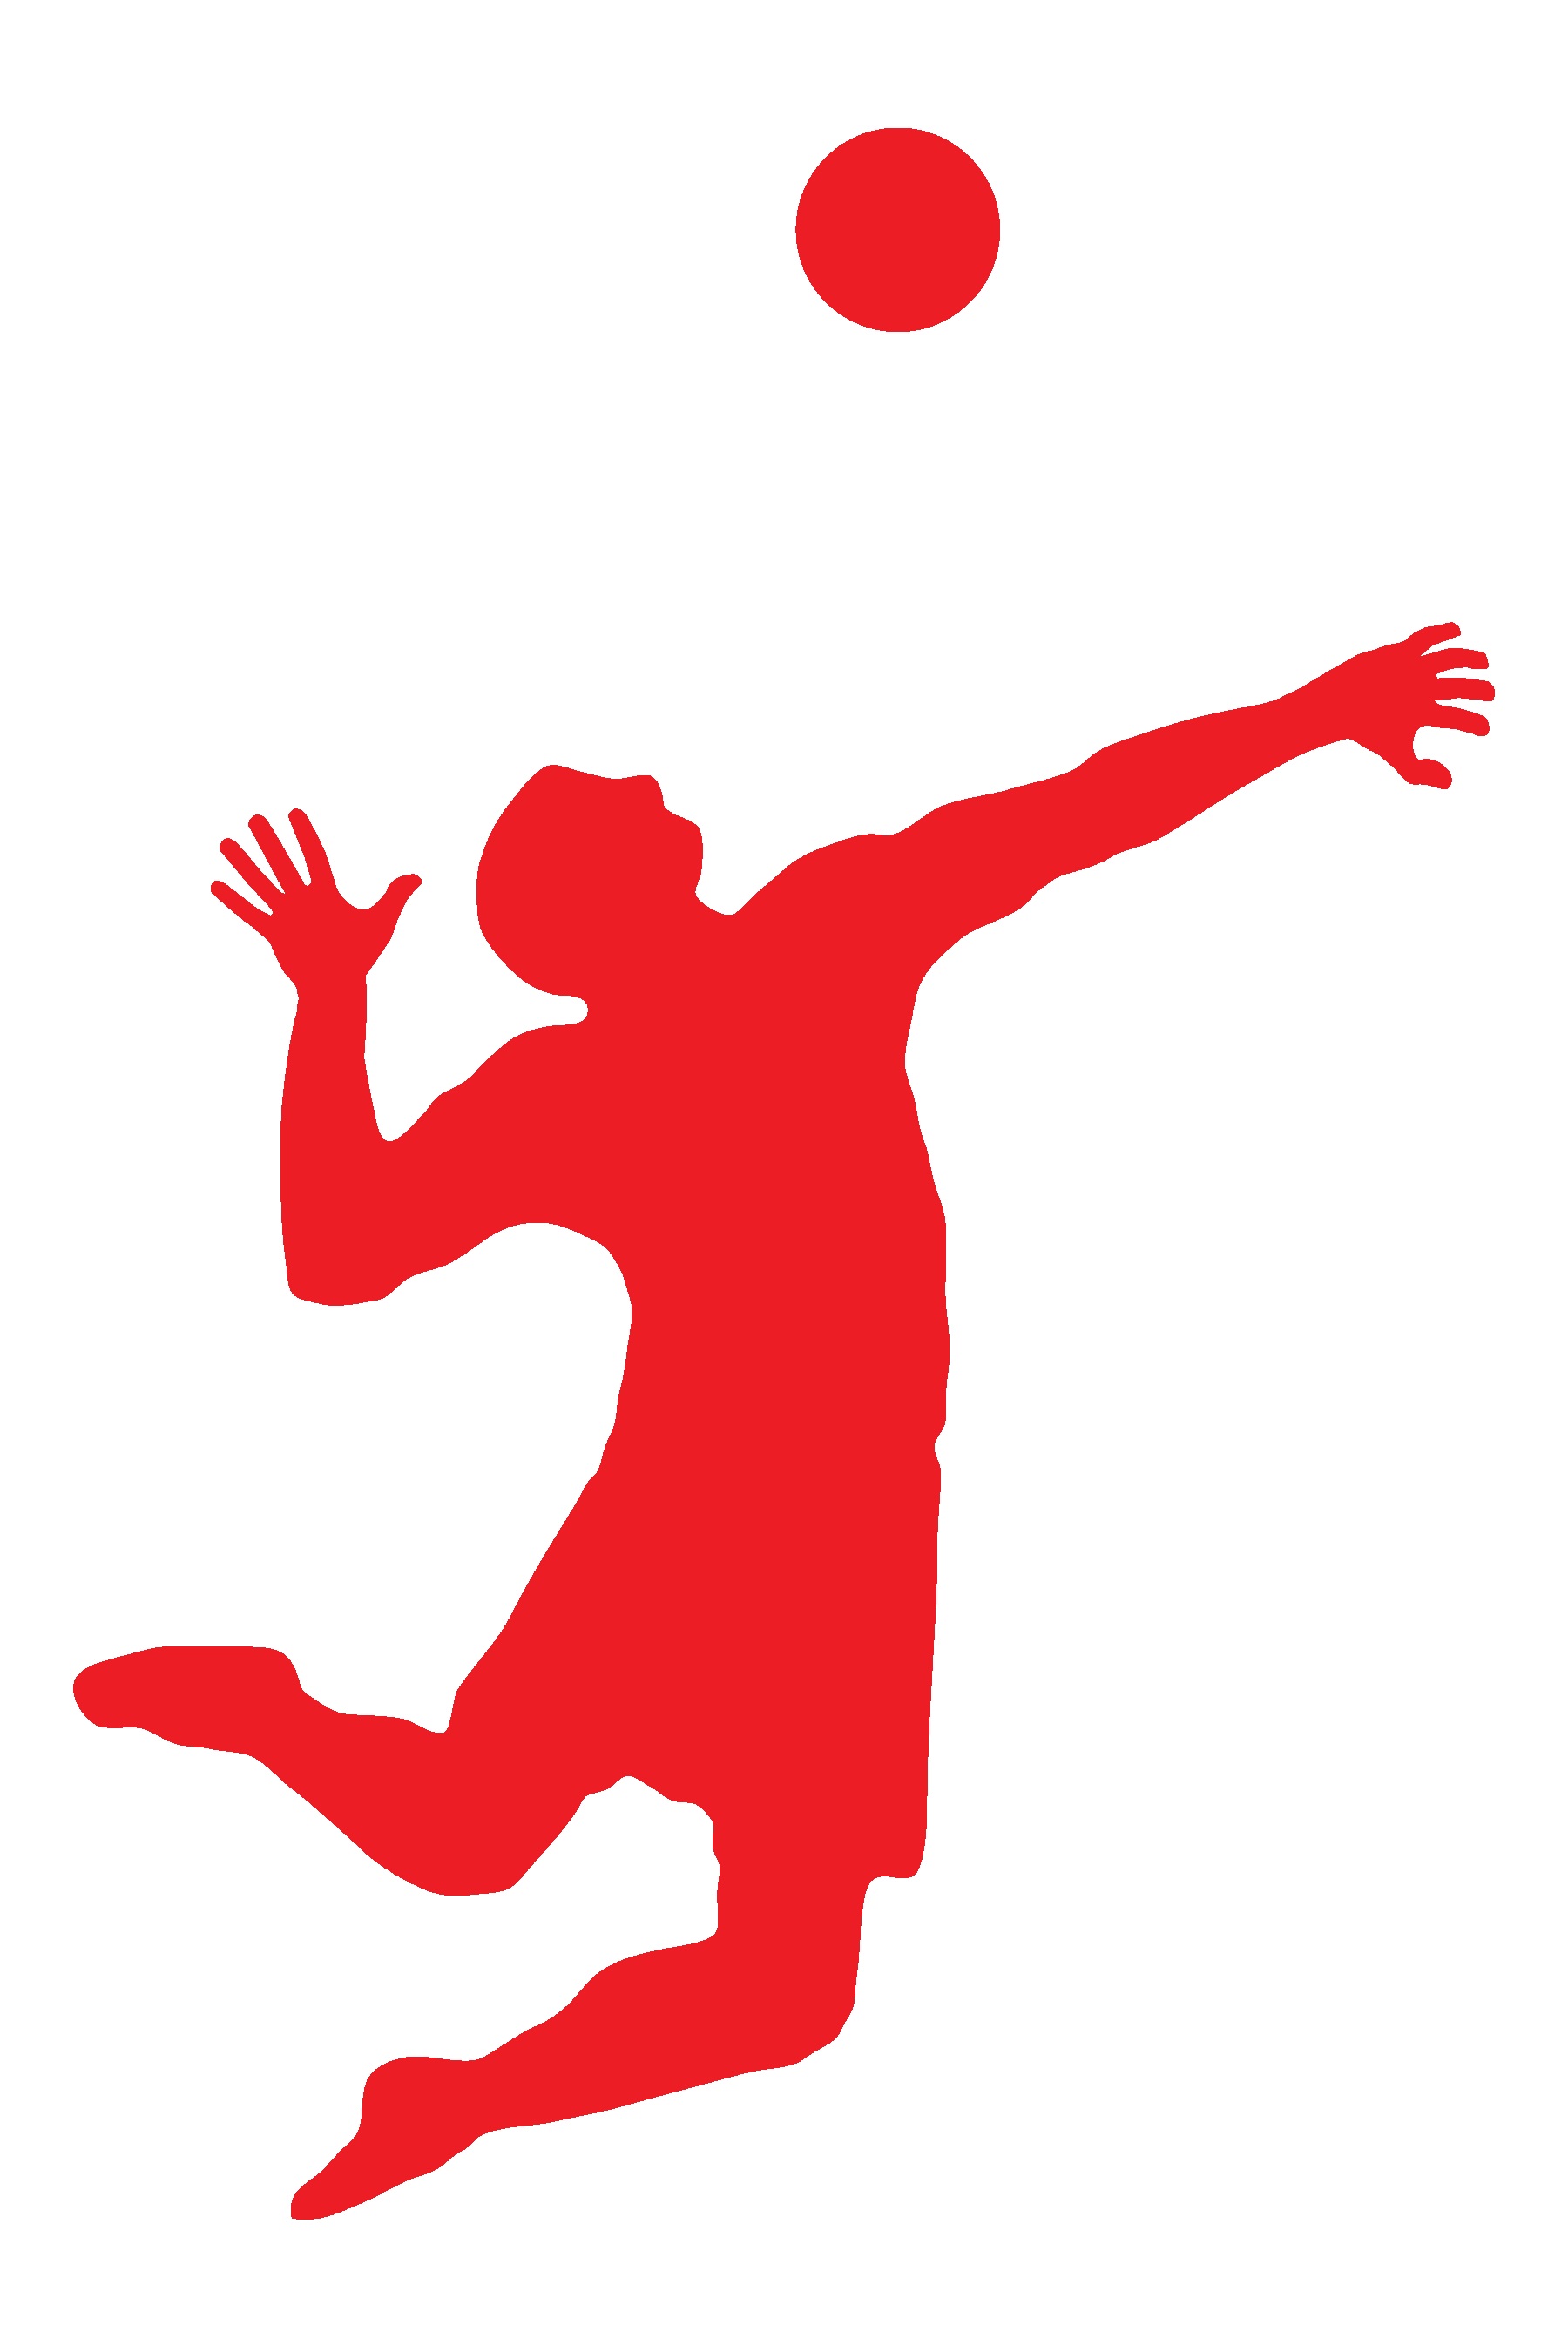 Clipart volleyball red. Hitter silhouette at getdrawings